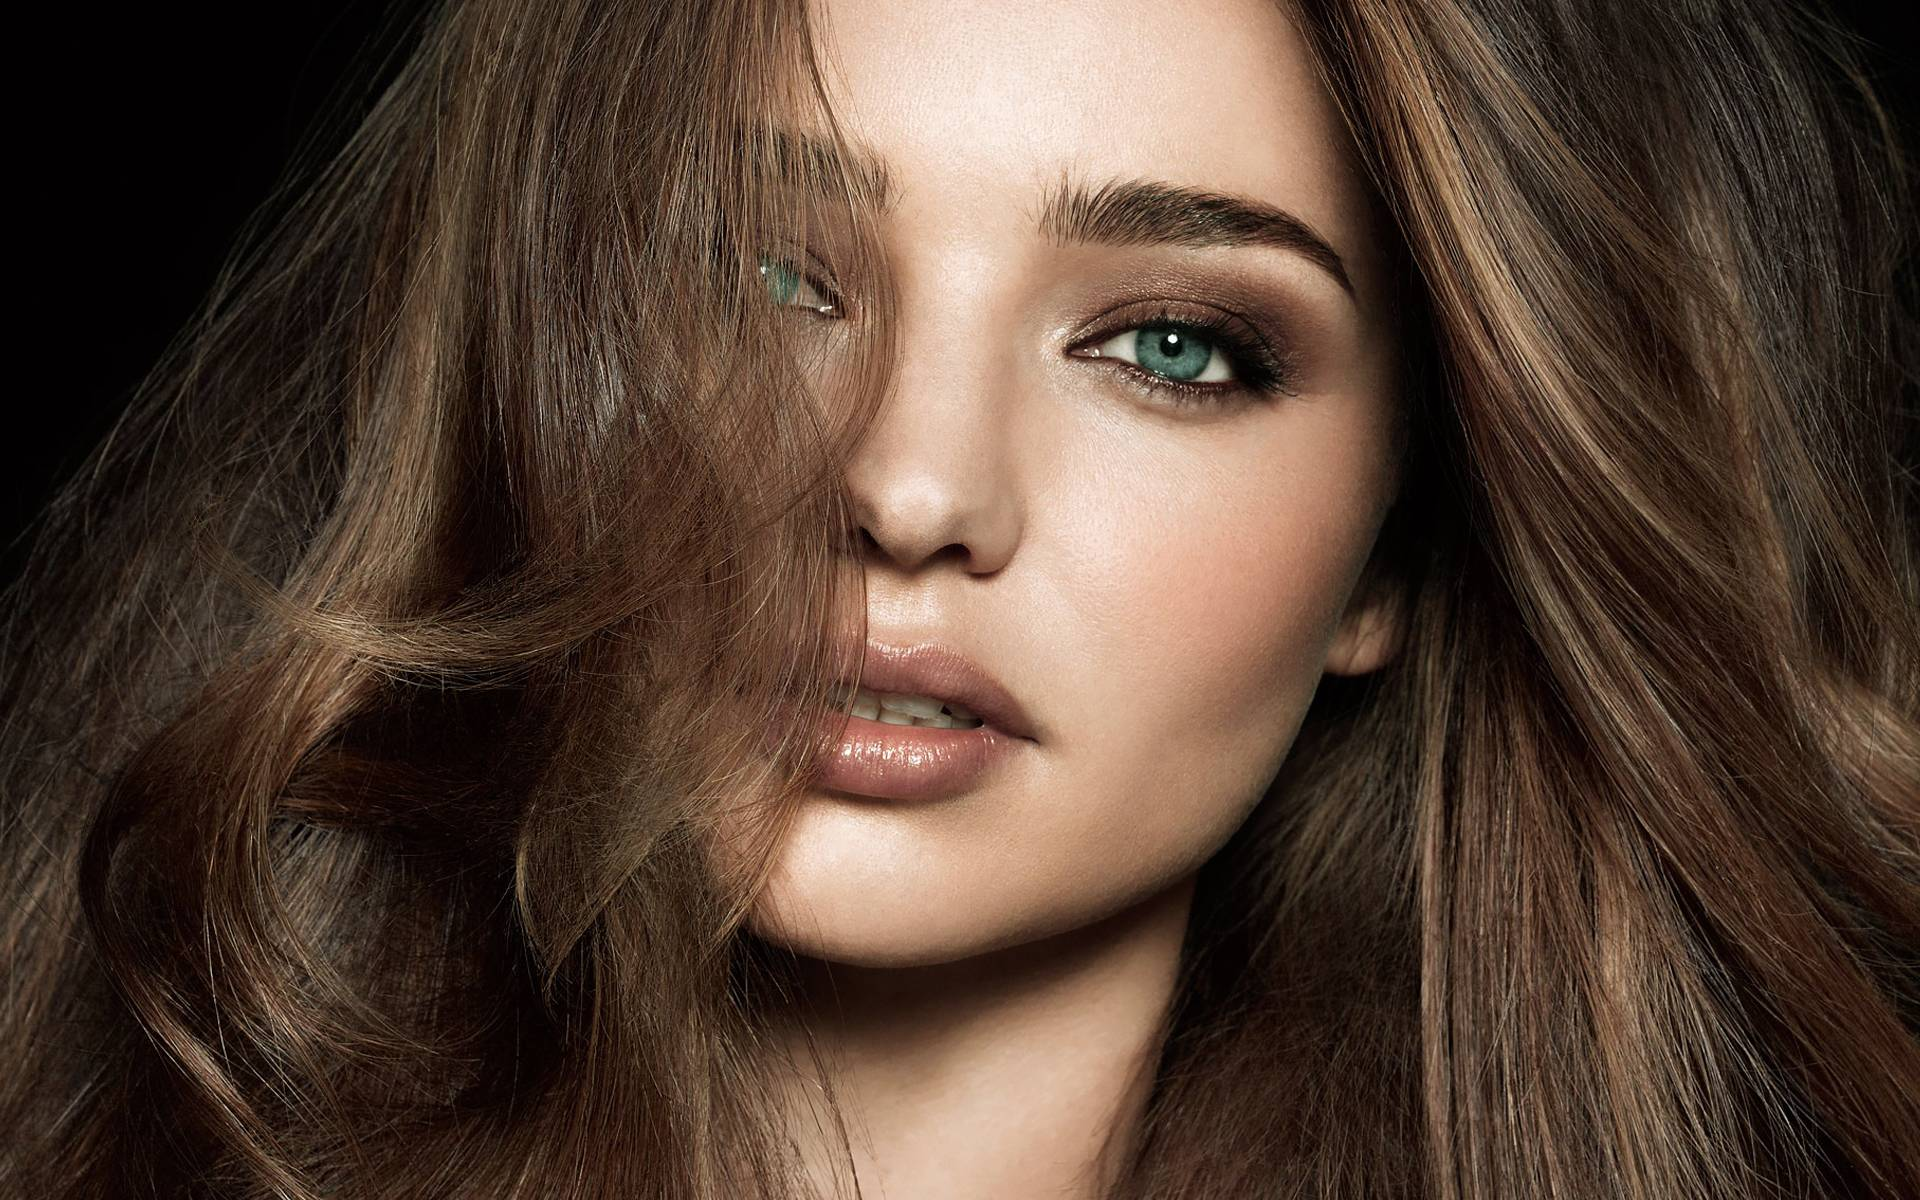 Miranda Kerr 12 Wallpapers